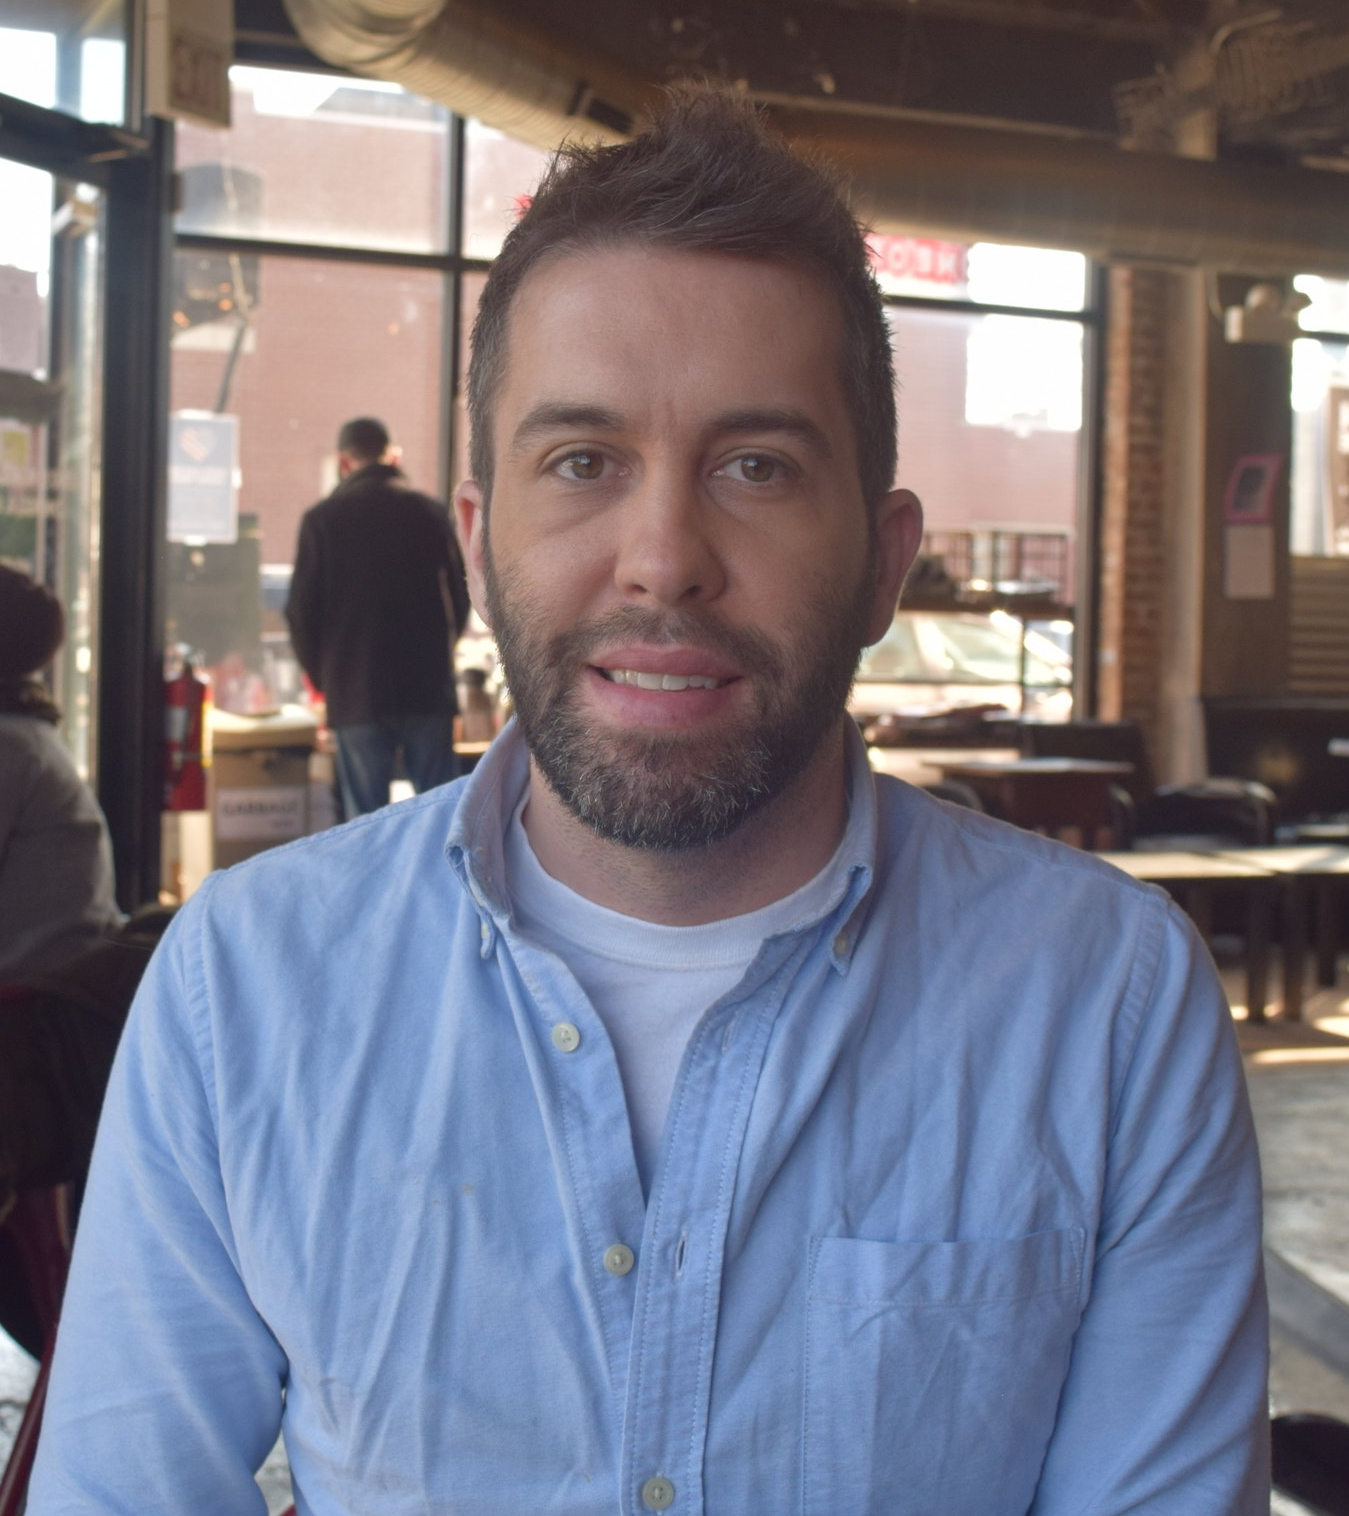 "Jake Sapstein   Co-owner, Robust Coffee Lounge   ""Robust Coffee Lounge was started between my husband and I seven years ago. It was at the time the financial markets were crashing, and both of us knew we were going to be out of work. It was an idea that we had that we thought would be something we'd do in our retirement, but it was the only thing we could see to do at that moment, so we decided to go for it. What brought us into the neighborhood was a couple of different factors. One is that the building that we're in, I was working on with a developer at the time, so I knew the building. As far as considering the neighborhood, my grandparents ran a chain of pharmacies on the South Side for 50 years, so I spent a lot of time in the neighborhood. I used to work at 83rd and Cottage Grove at a pharmacy that was there. That was kind of like my summer job. So, at the time we looked around, and it was pretty obvious that there was a lack of food, lack of drink, so it came down to what would be the best food based business to go into. Coffee is something that everybody can kind of partake in whether they were part of the neighborhood, part of the university - whether they were a young student or a grad student, a kid or retired adult, if they have money or are living on a fixed income. Coffee is $1.50 – you can come, sit, soak up the atmosphere, catch up with friends, get work done, and so that was what we thought would be the best route to take in the neighborhood…There is a great amount of potential in this neighborhood. If you're in any other neighborhood, you may see dilapidated buildings. You may see open storefronts. You drive even through Lincoln Park, you find on a street like Armitage or Halsted where there used to be thriving businesses, open stores or for rent signs. Here we kind of had that at one point. There were riots and fires in the neighborhood, and it kind of cleared out quite a bit of the infrastructure. So, now people are coming in and actually able to start from the ground up, and I think that's got a lot of people excited."""